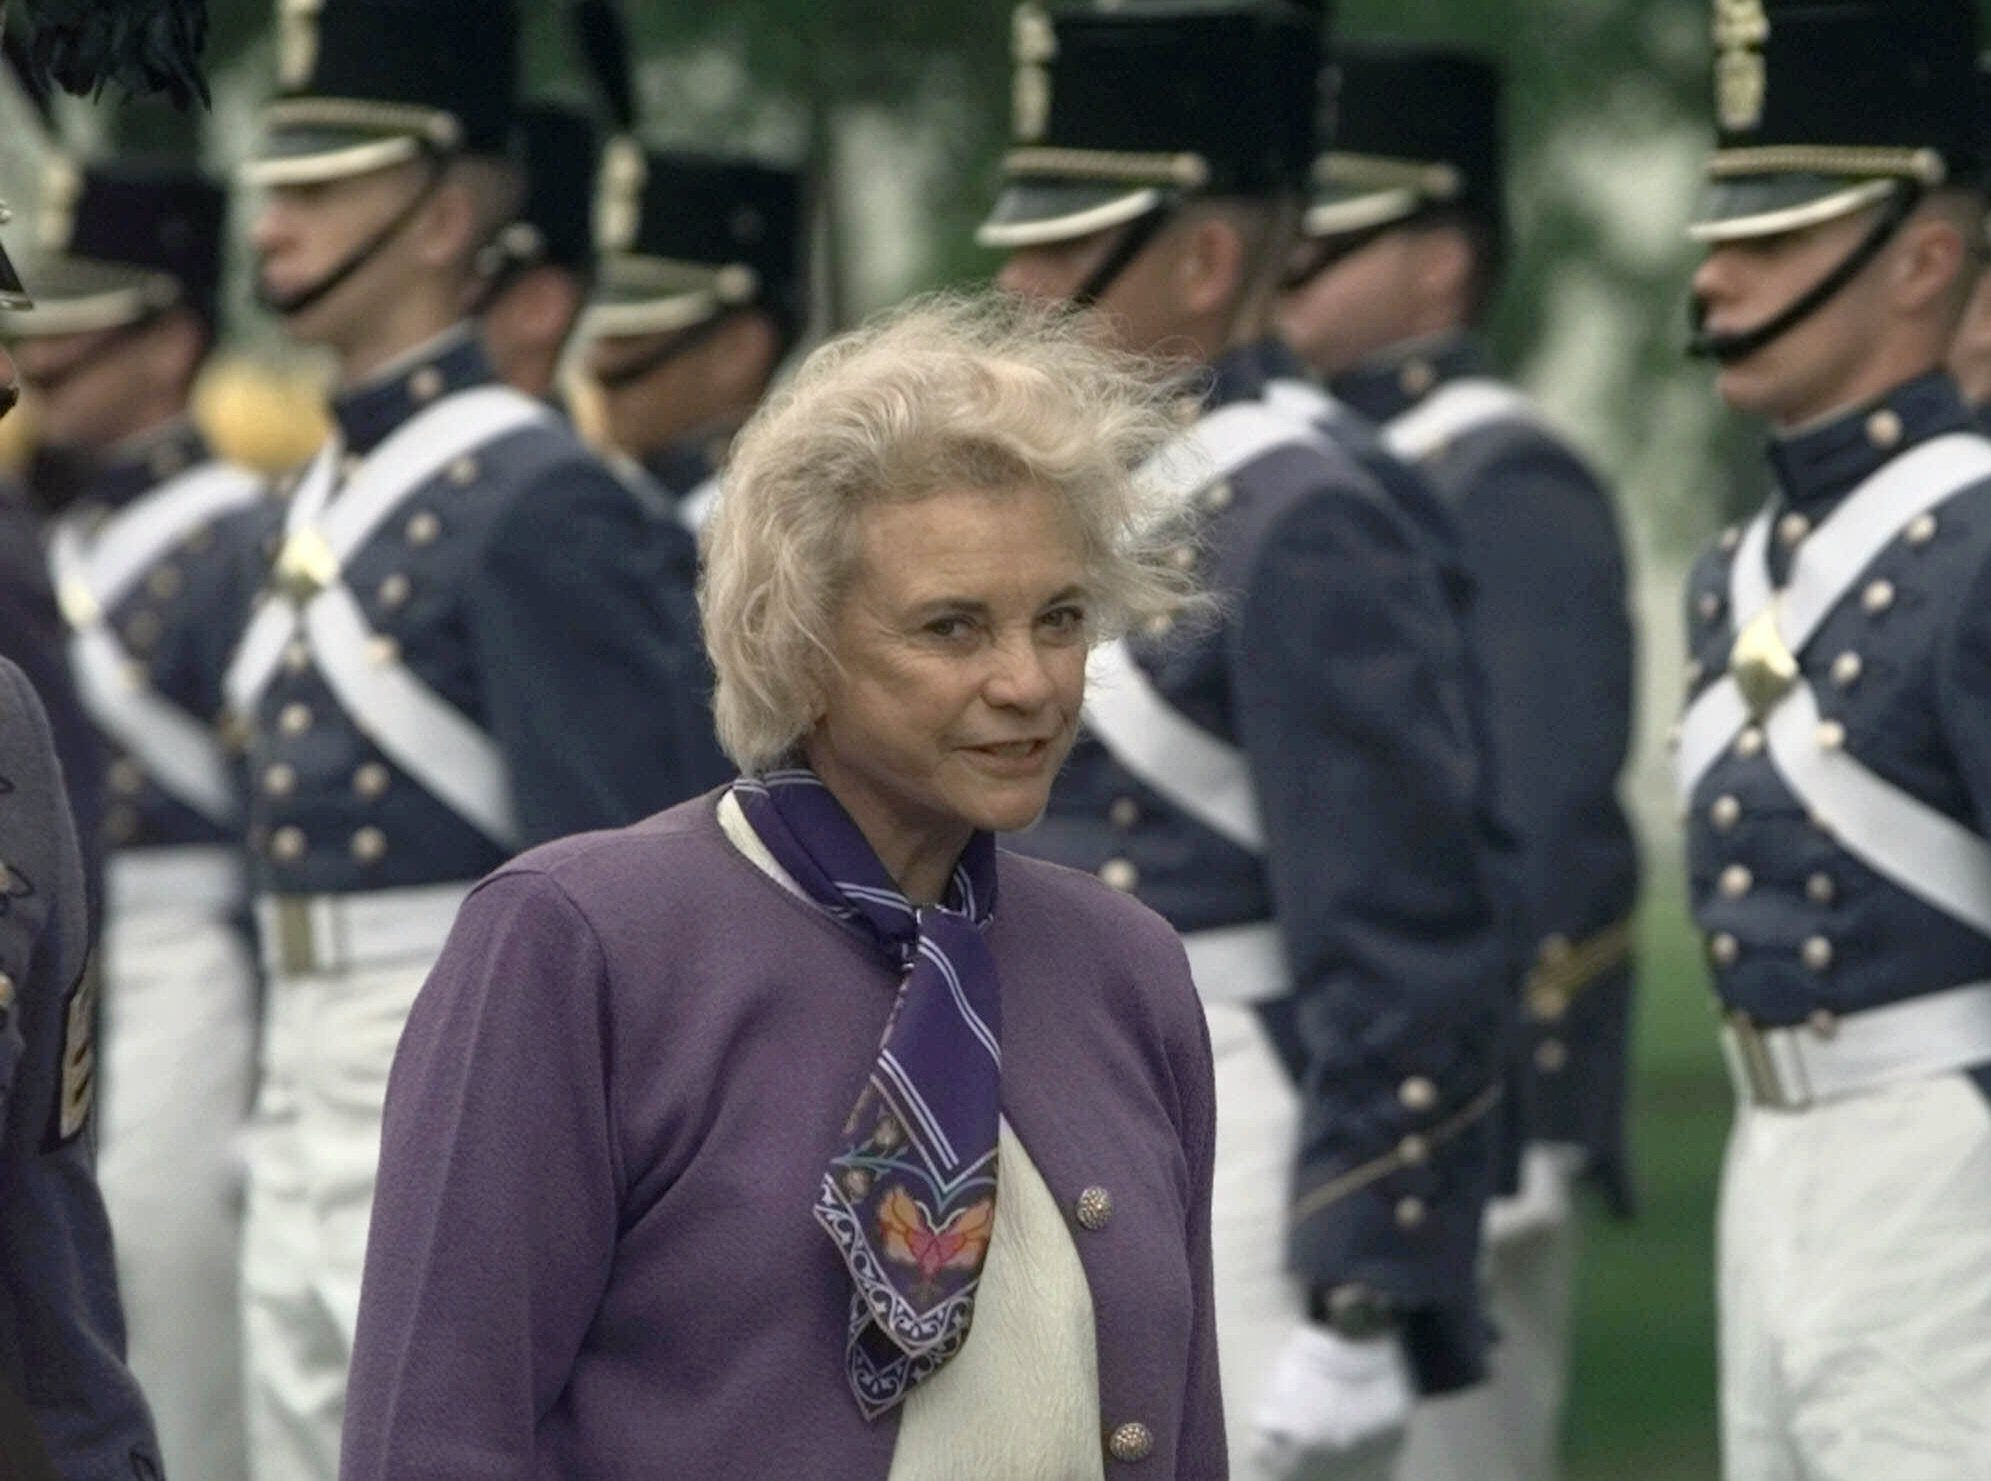 U.S. Supreme Court Justice Sandra Day O'Connor walks pass an honor guard on the way to address the The Citadel Corps of Cadets Tuesday April 4, 2000, at the military college in Charleston, S.C.